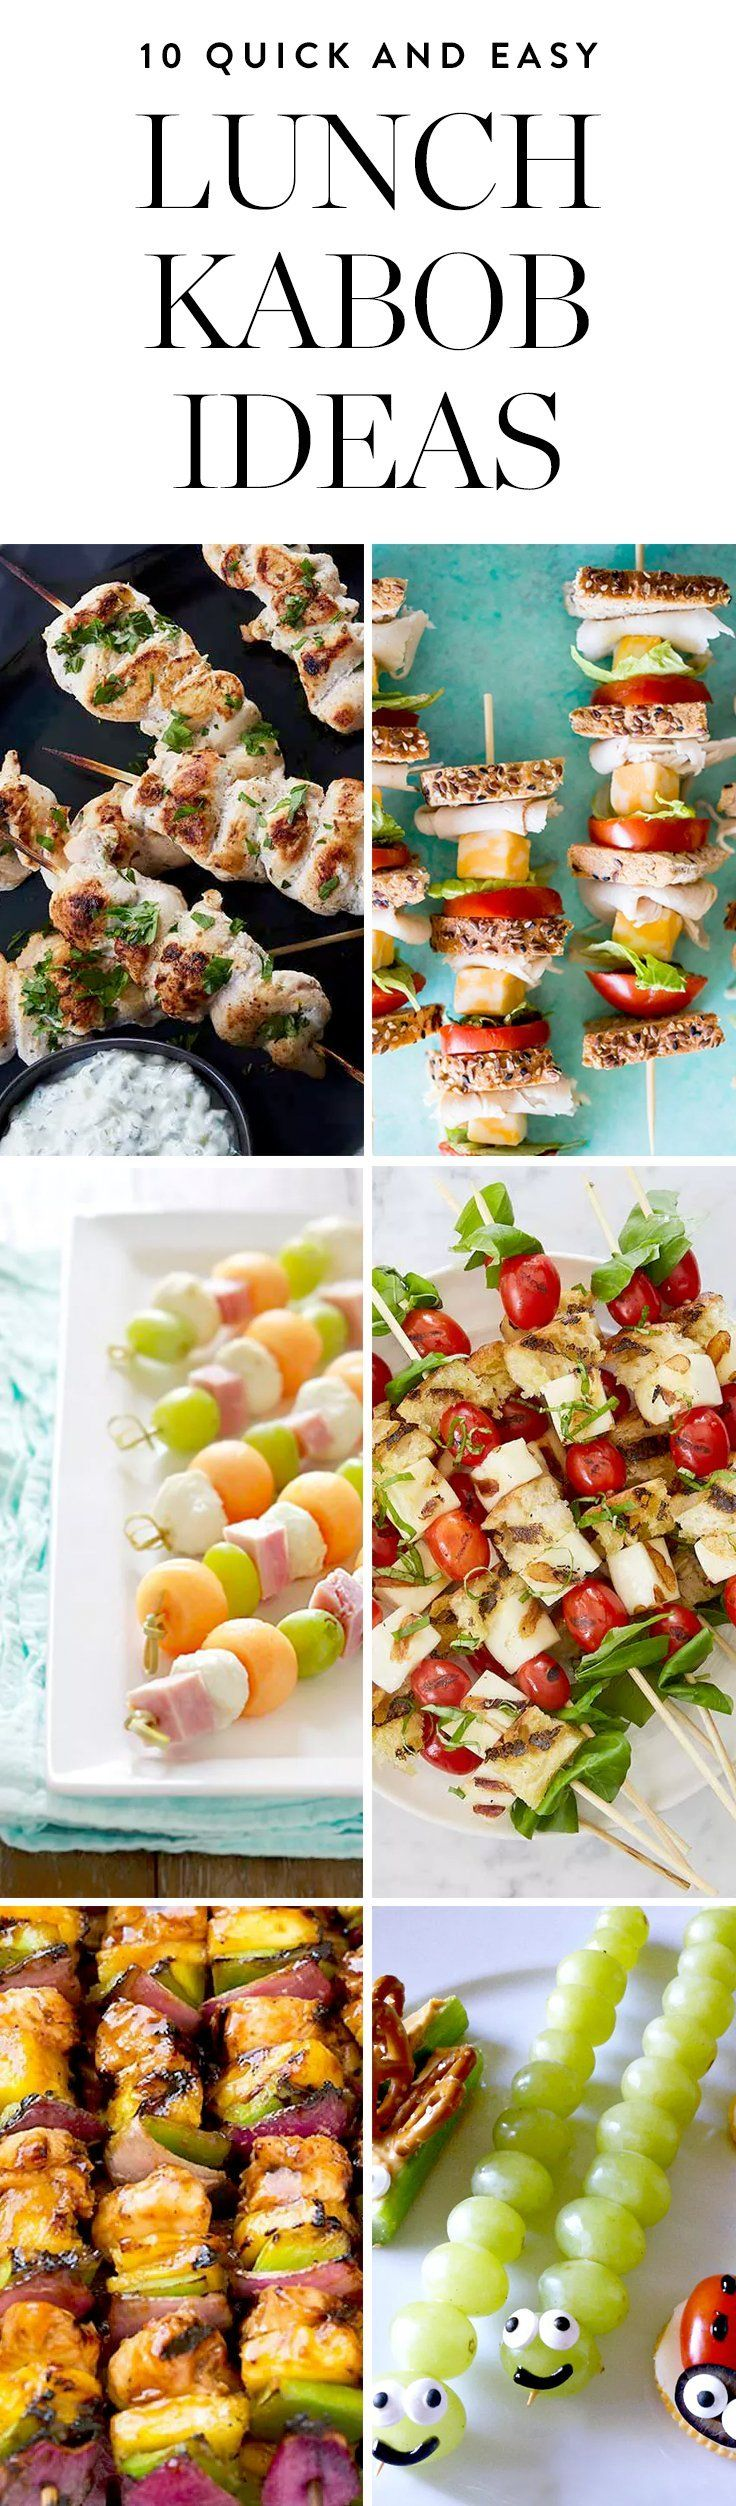 Presenting our new favorite way to eat lunch. Here are 10 quick and easy lunch kabob ideas that are perfect for school lunchboxes, the office or weekend picnics.